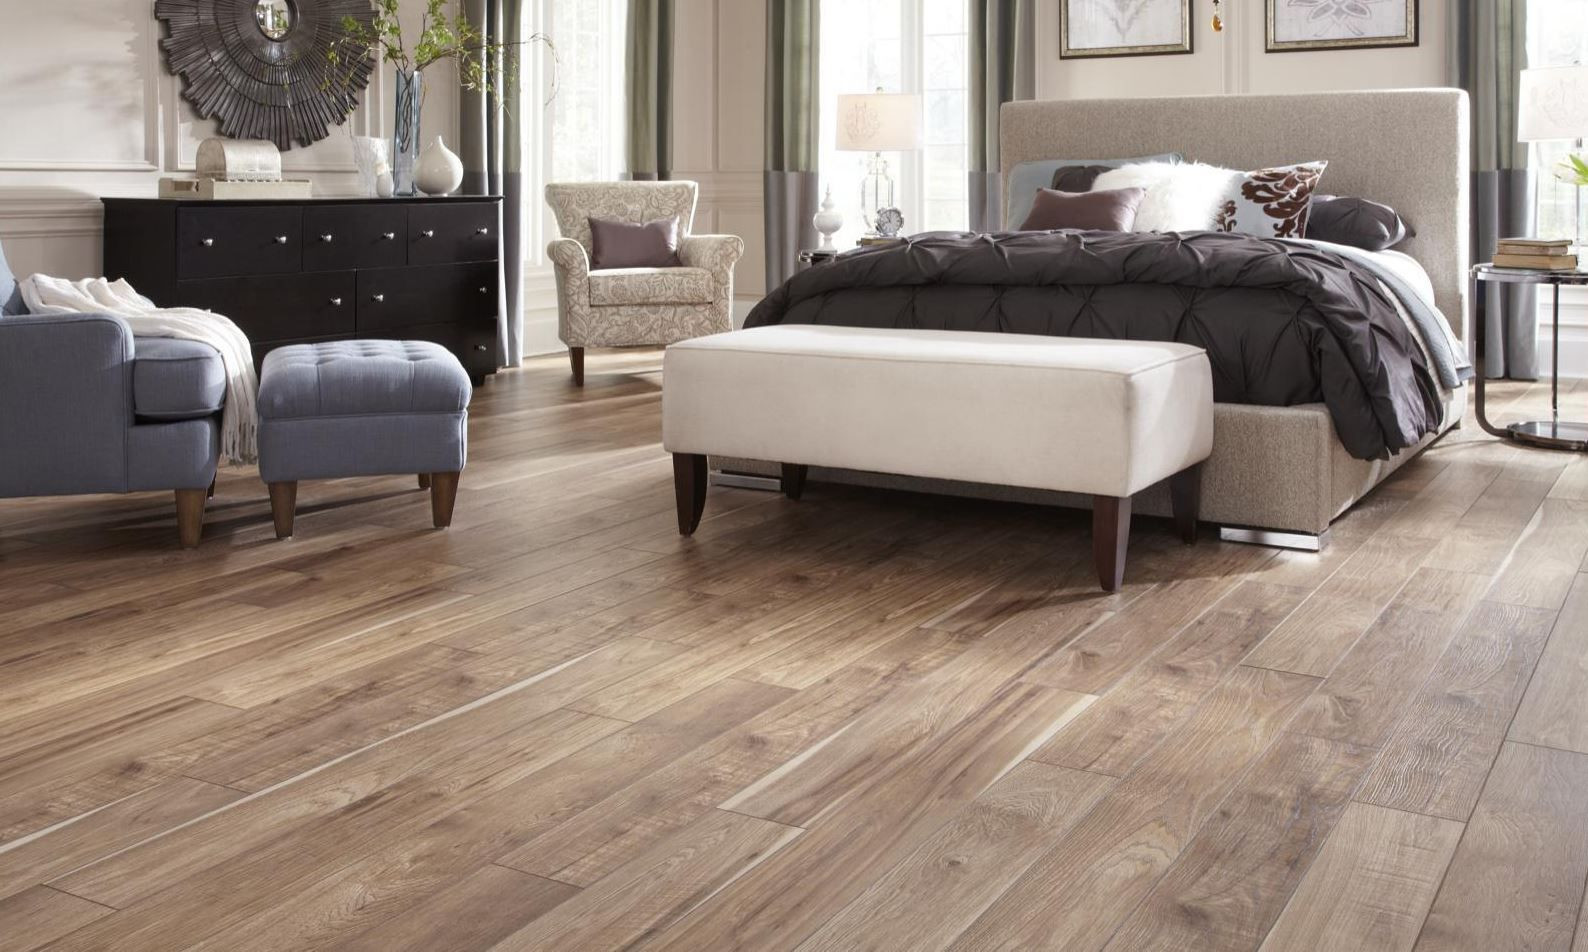 5 Inch Wide Hardwood Flooring Of Luxury Vinyl Plank Flooring that Looks Like Wood with Mannington Adura Luxury Vinyl Plank Flooring 57aa7d065f9b58974a2be49e Jpg